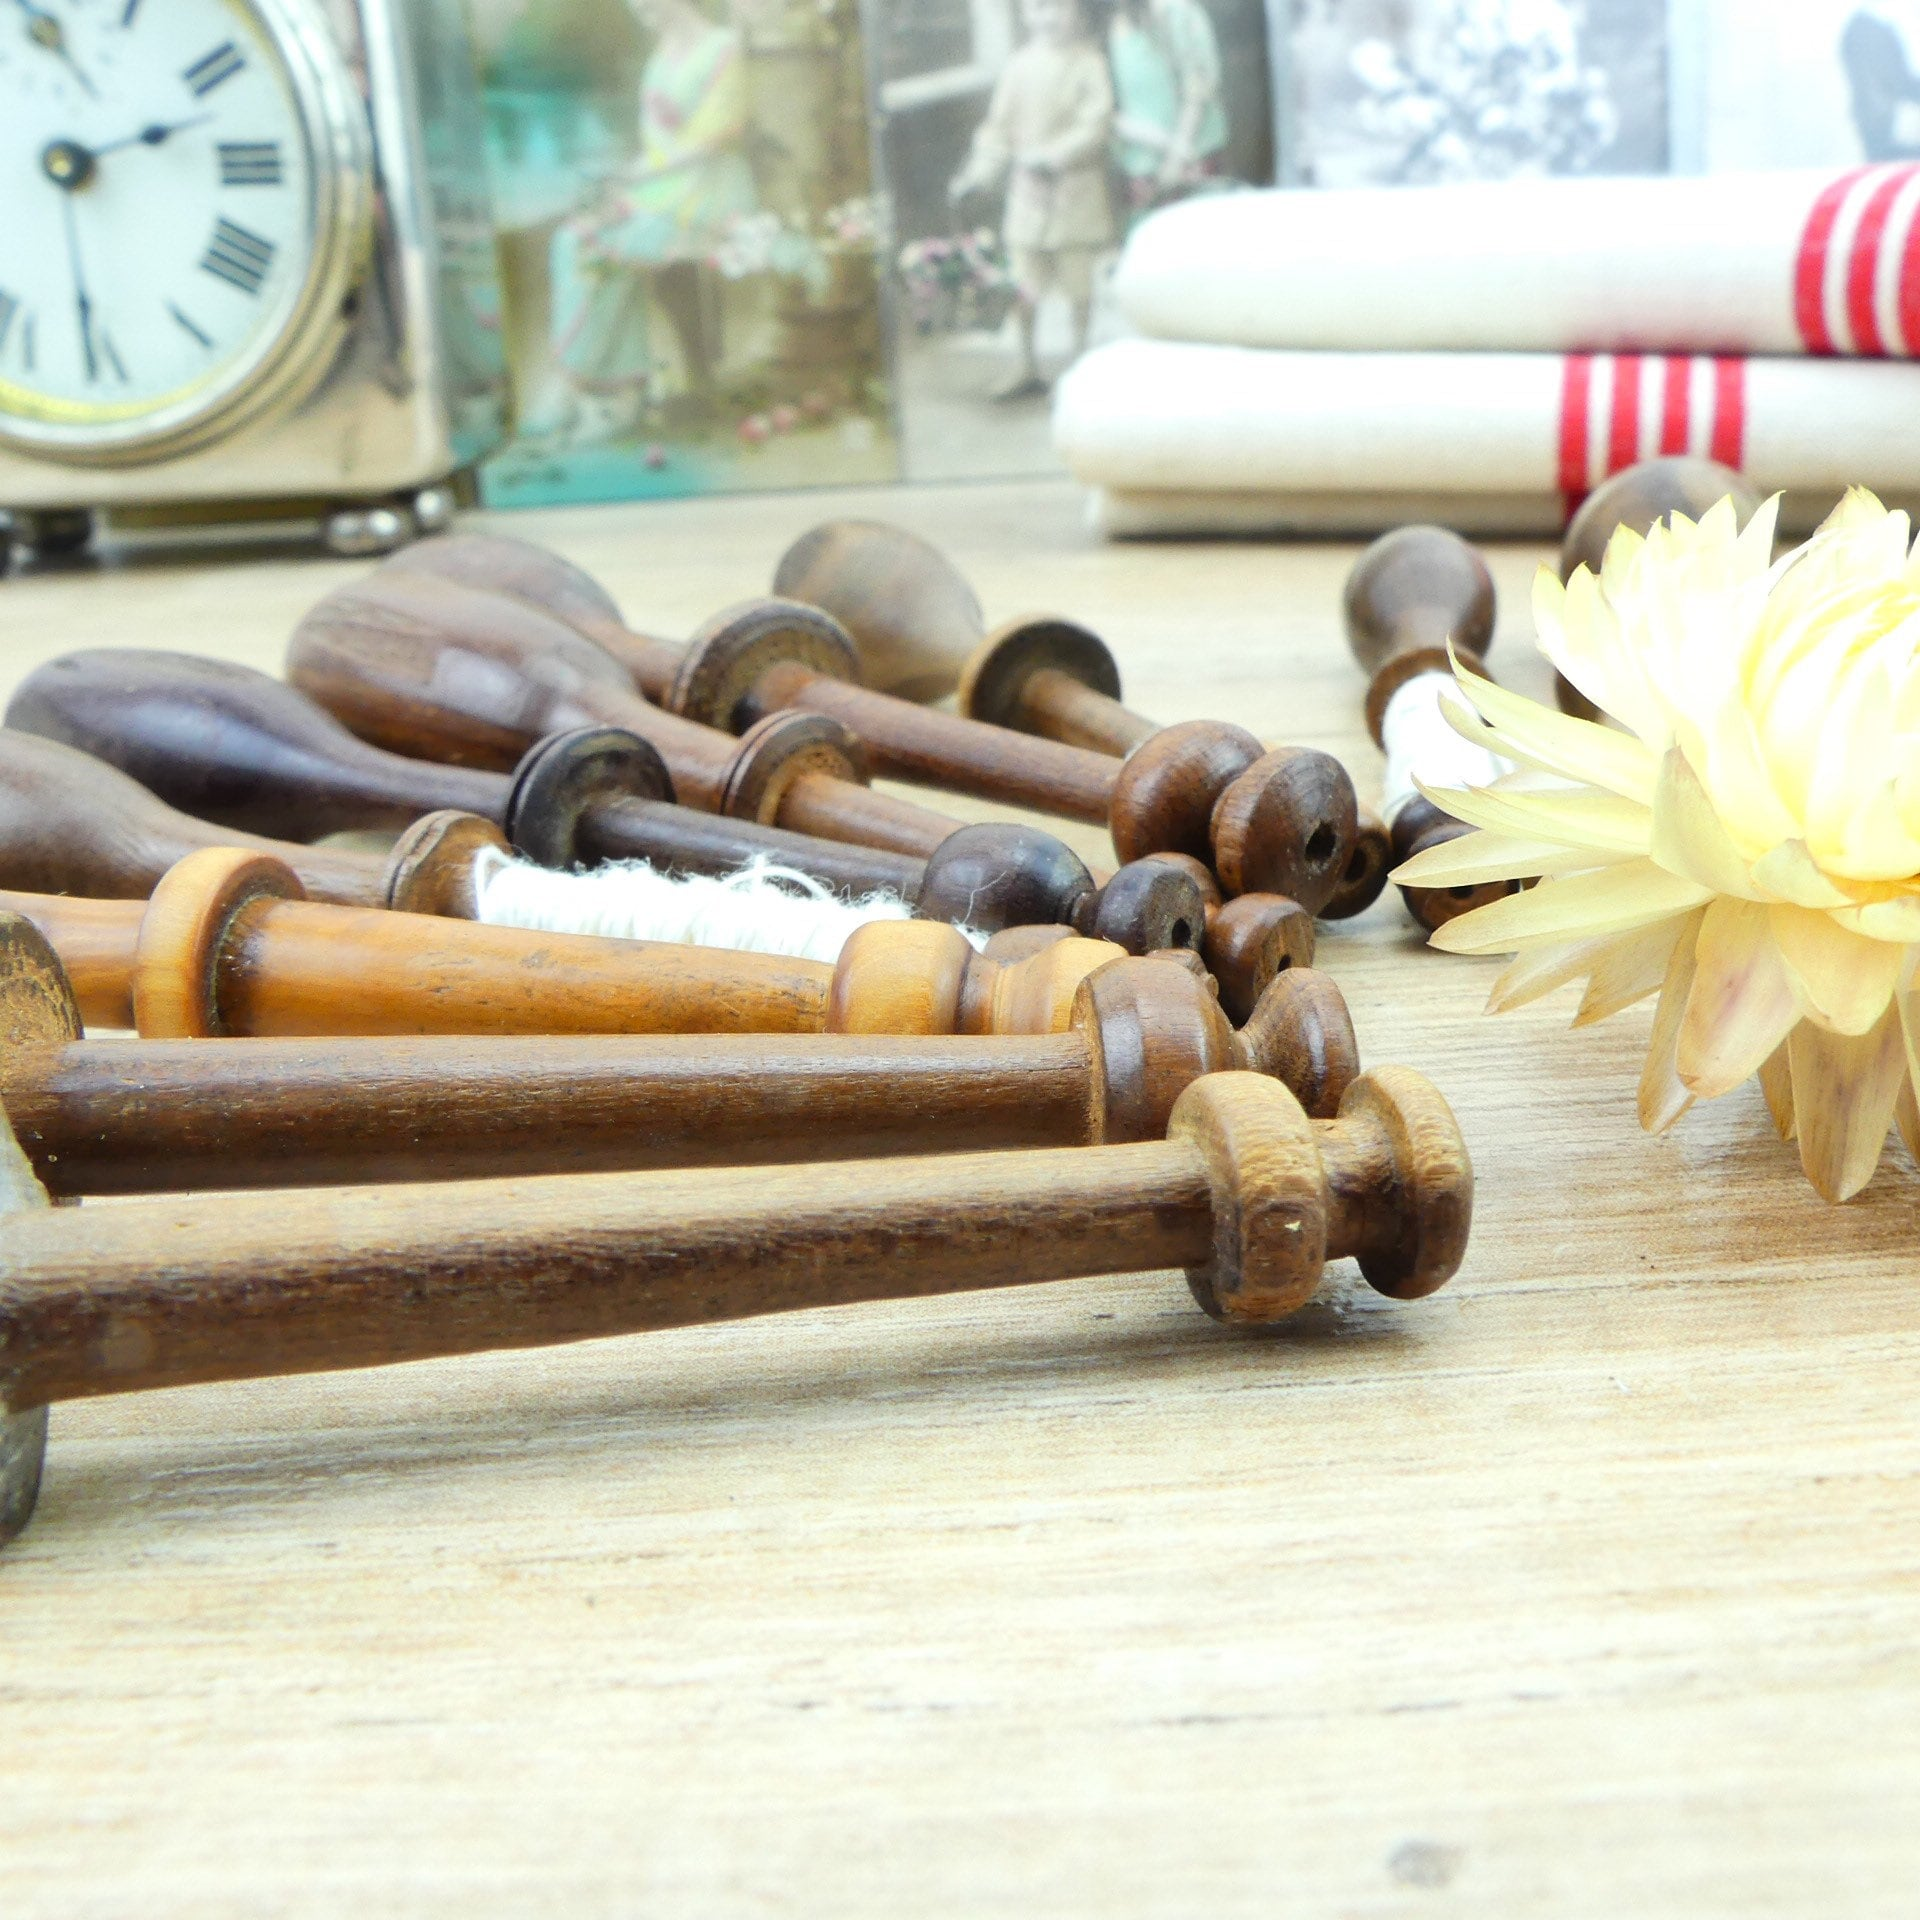 Set of Vintage French Wood Bobbins Lace Making Spools Wooden